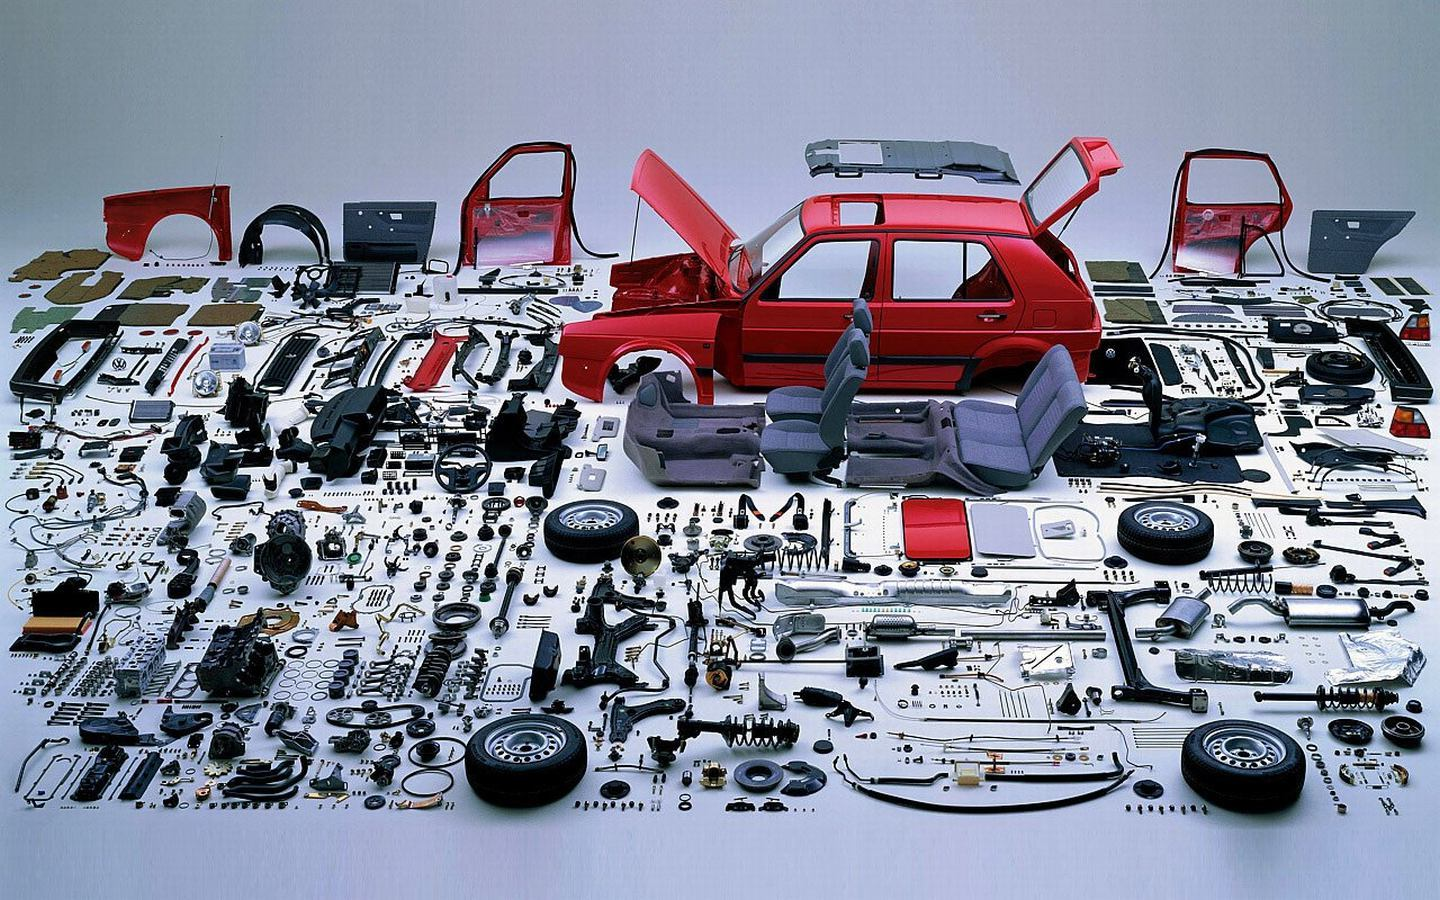 Engineering Car Wallpapers   Top Engineering Car Backgrounds 1440x900